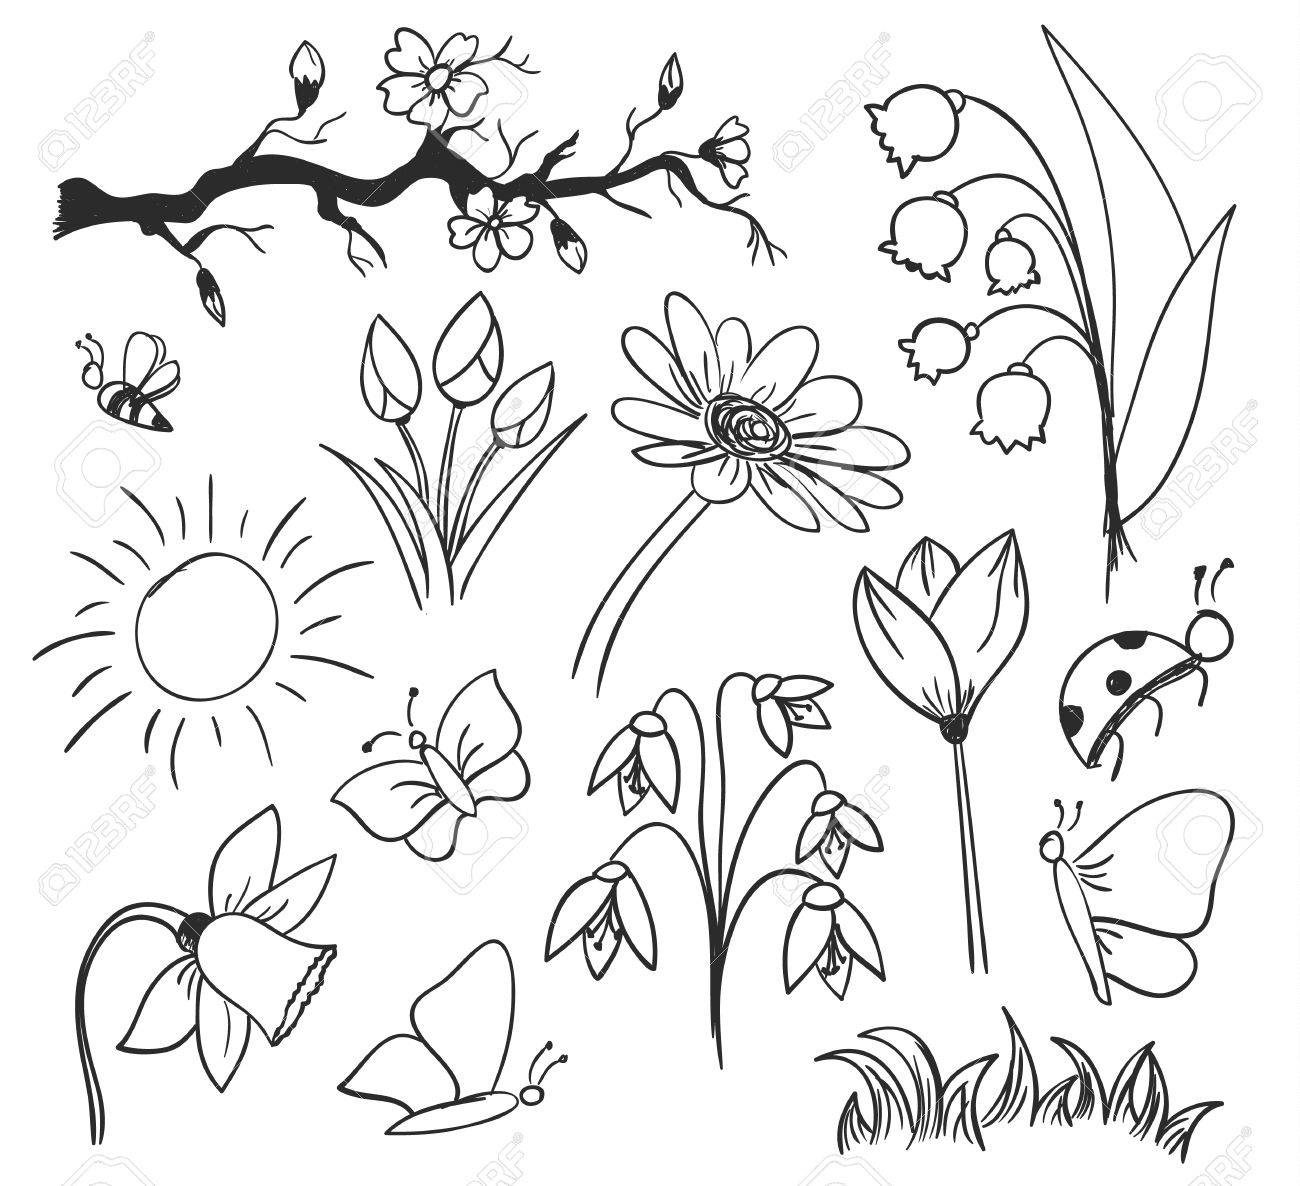 Drawing Of Spring Flowers And Butterfly Royalty Free Cliparts Vectors And Stock Illustration Image 28514990